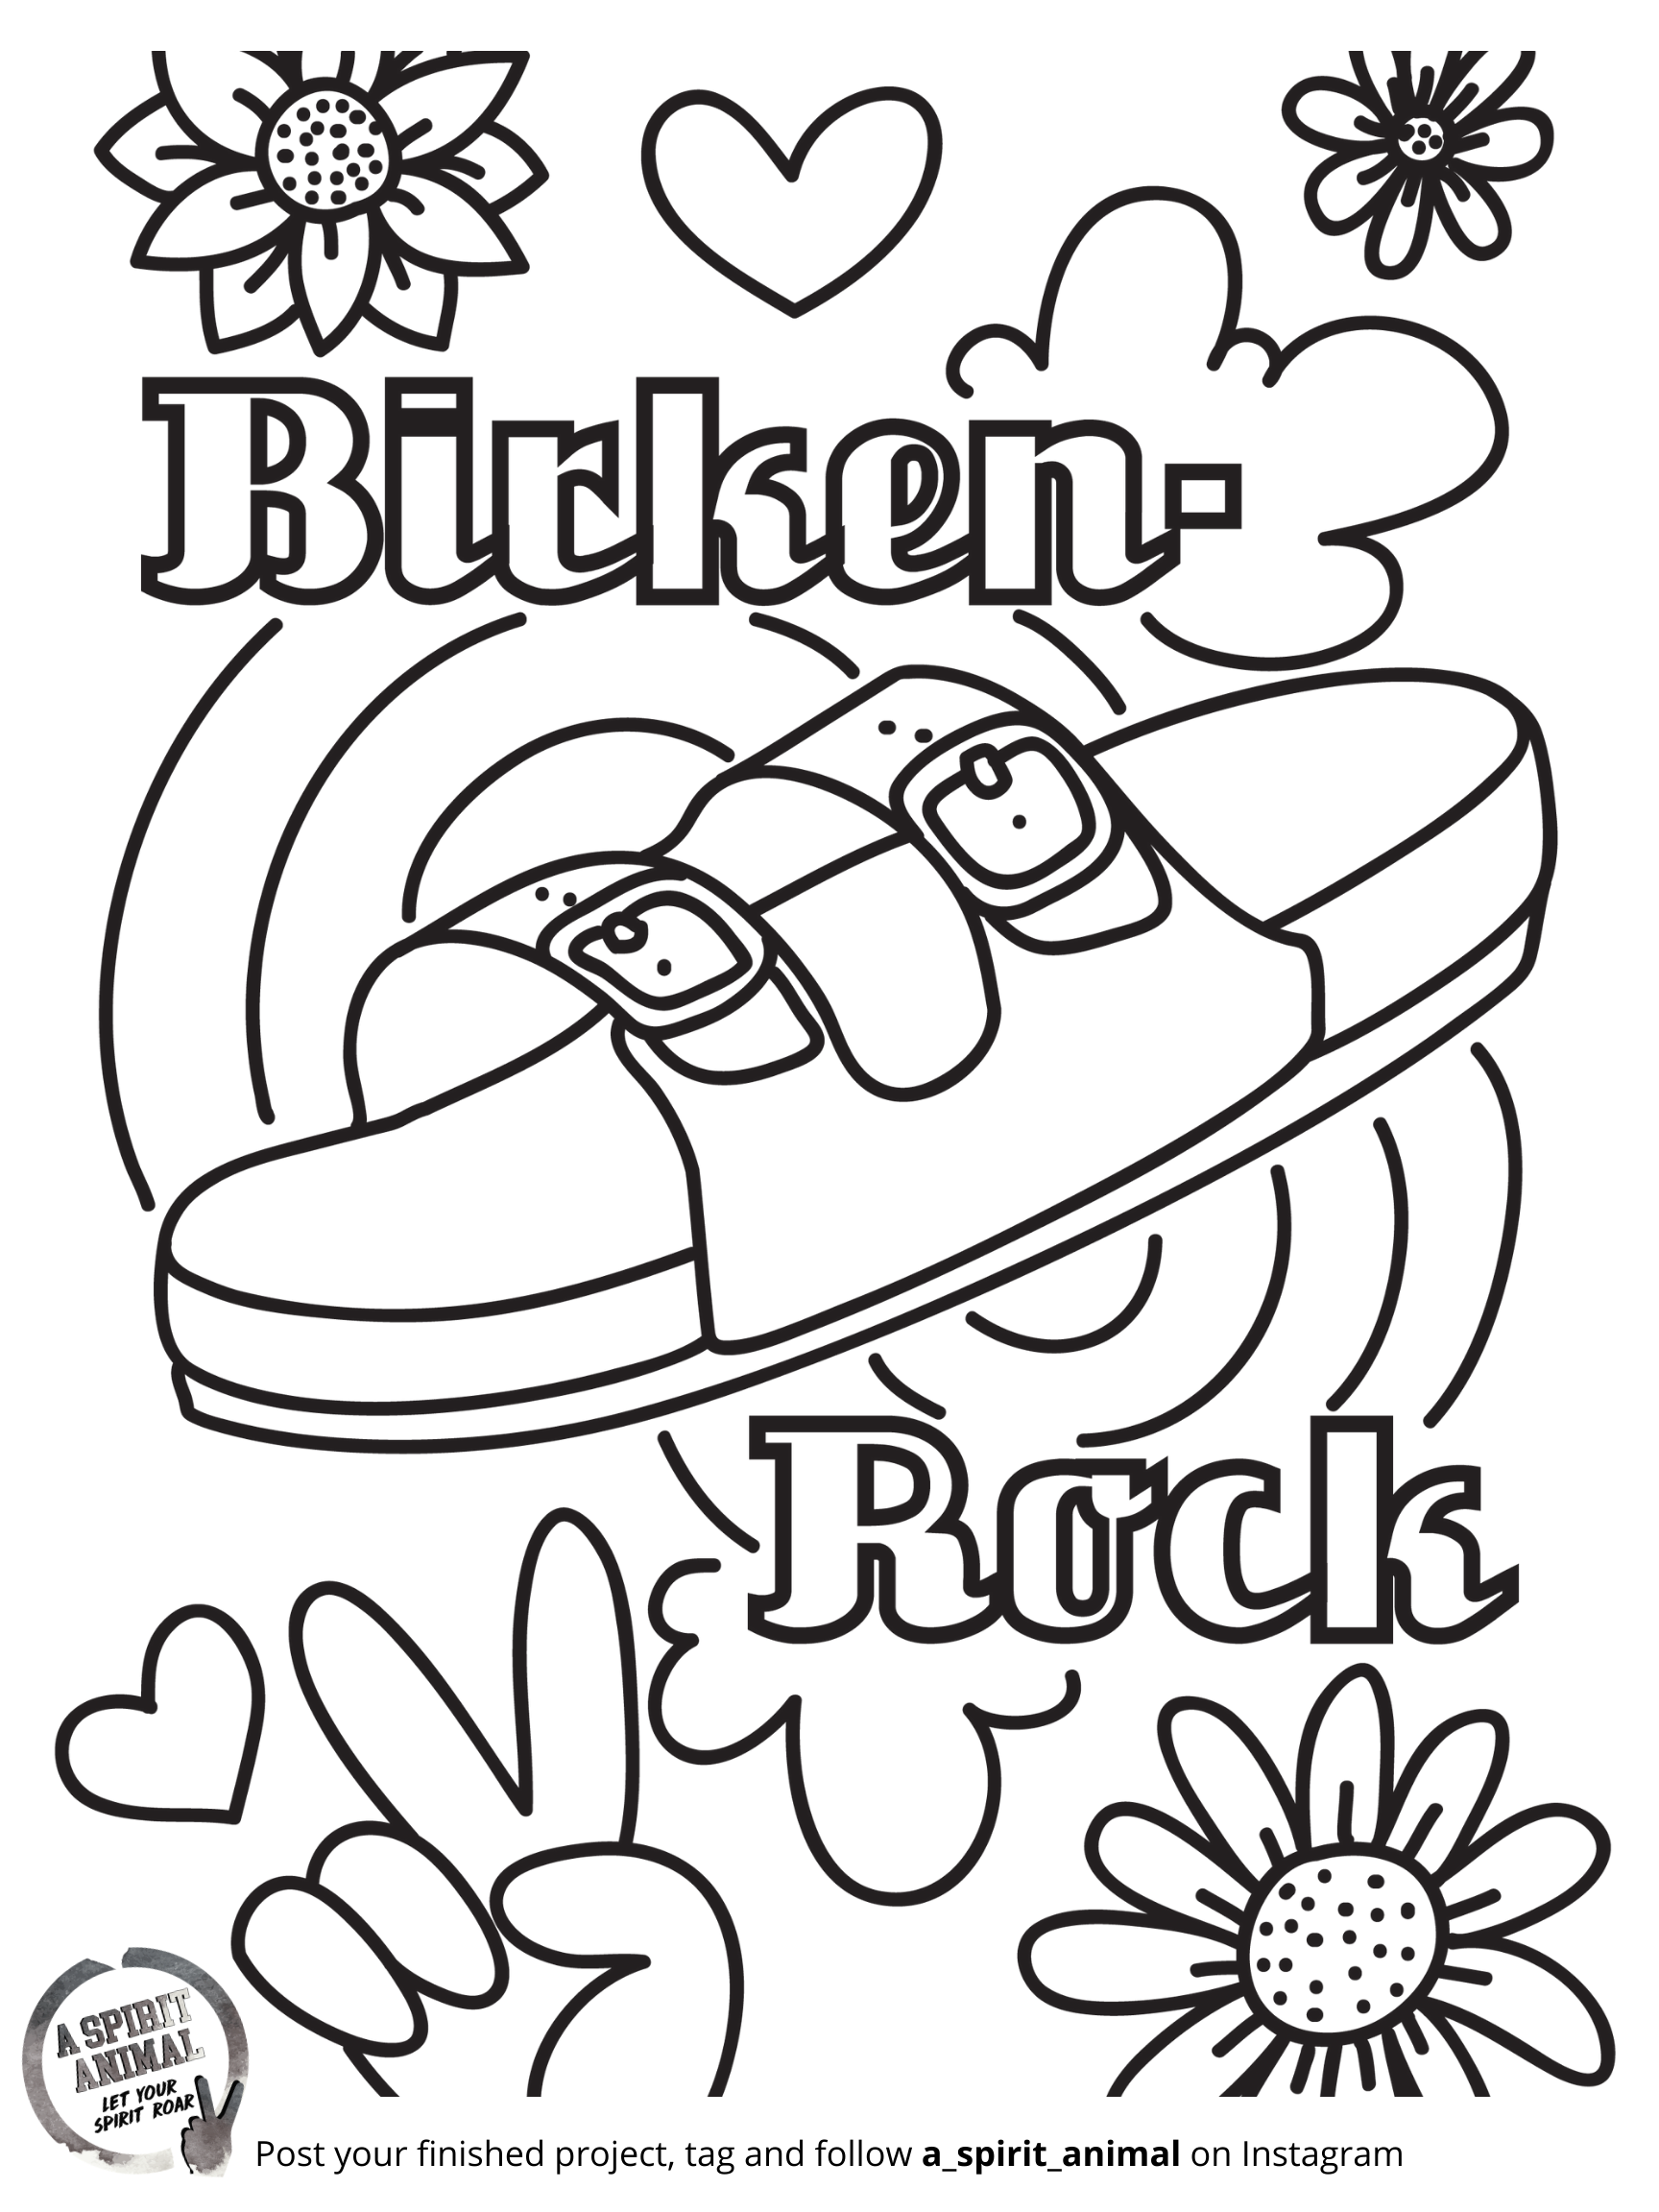 Birkenstock sandals coloring page for girls and tweens. Everyone loves dressing up a flower child